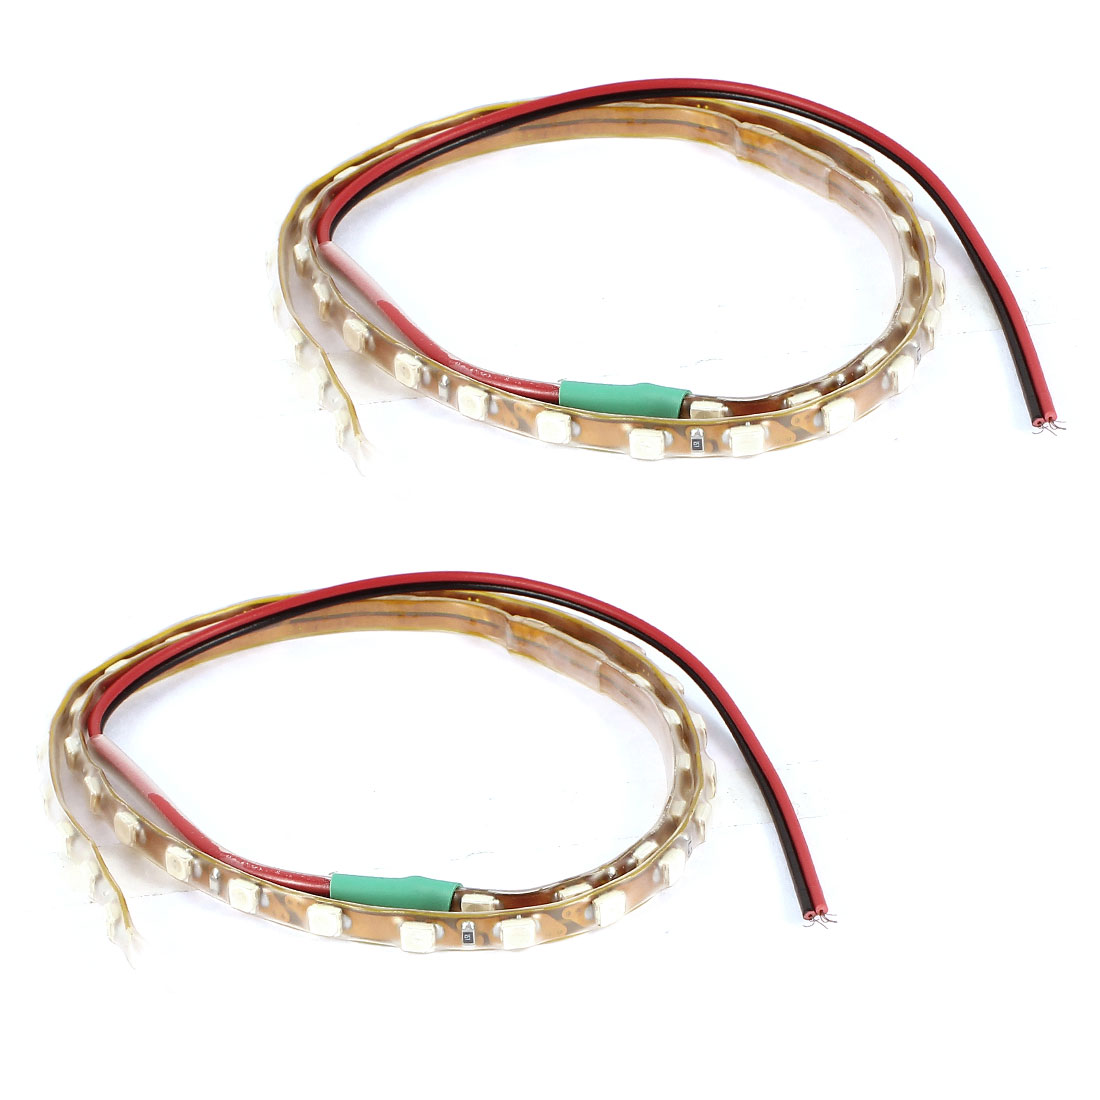 2 Pcs 45cm Length Green LED 45 1210 SMD Light Strip Decor for Car Vehicles Internal